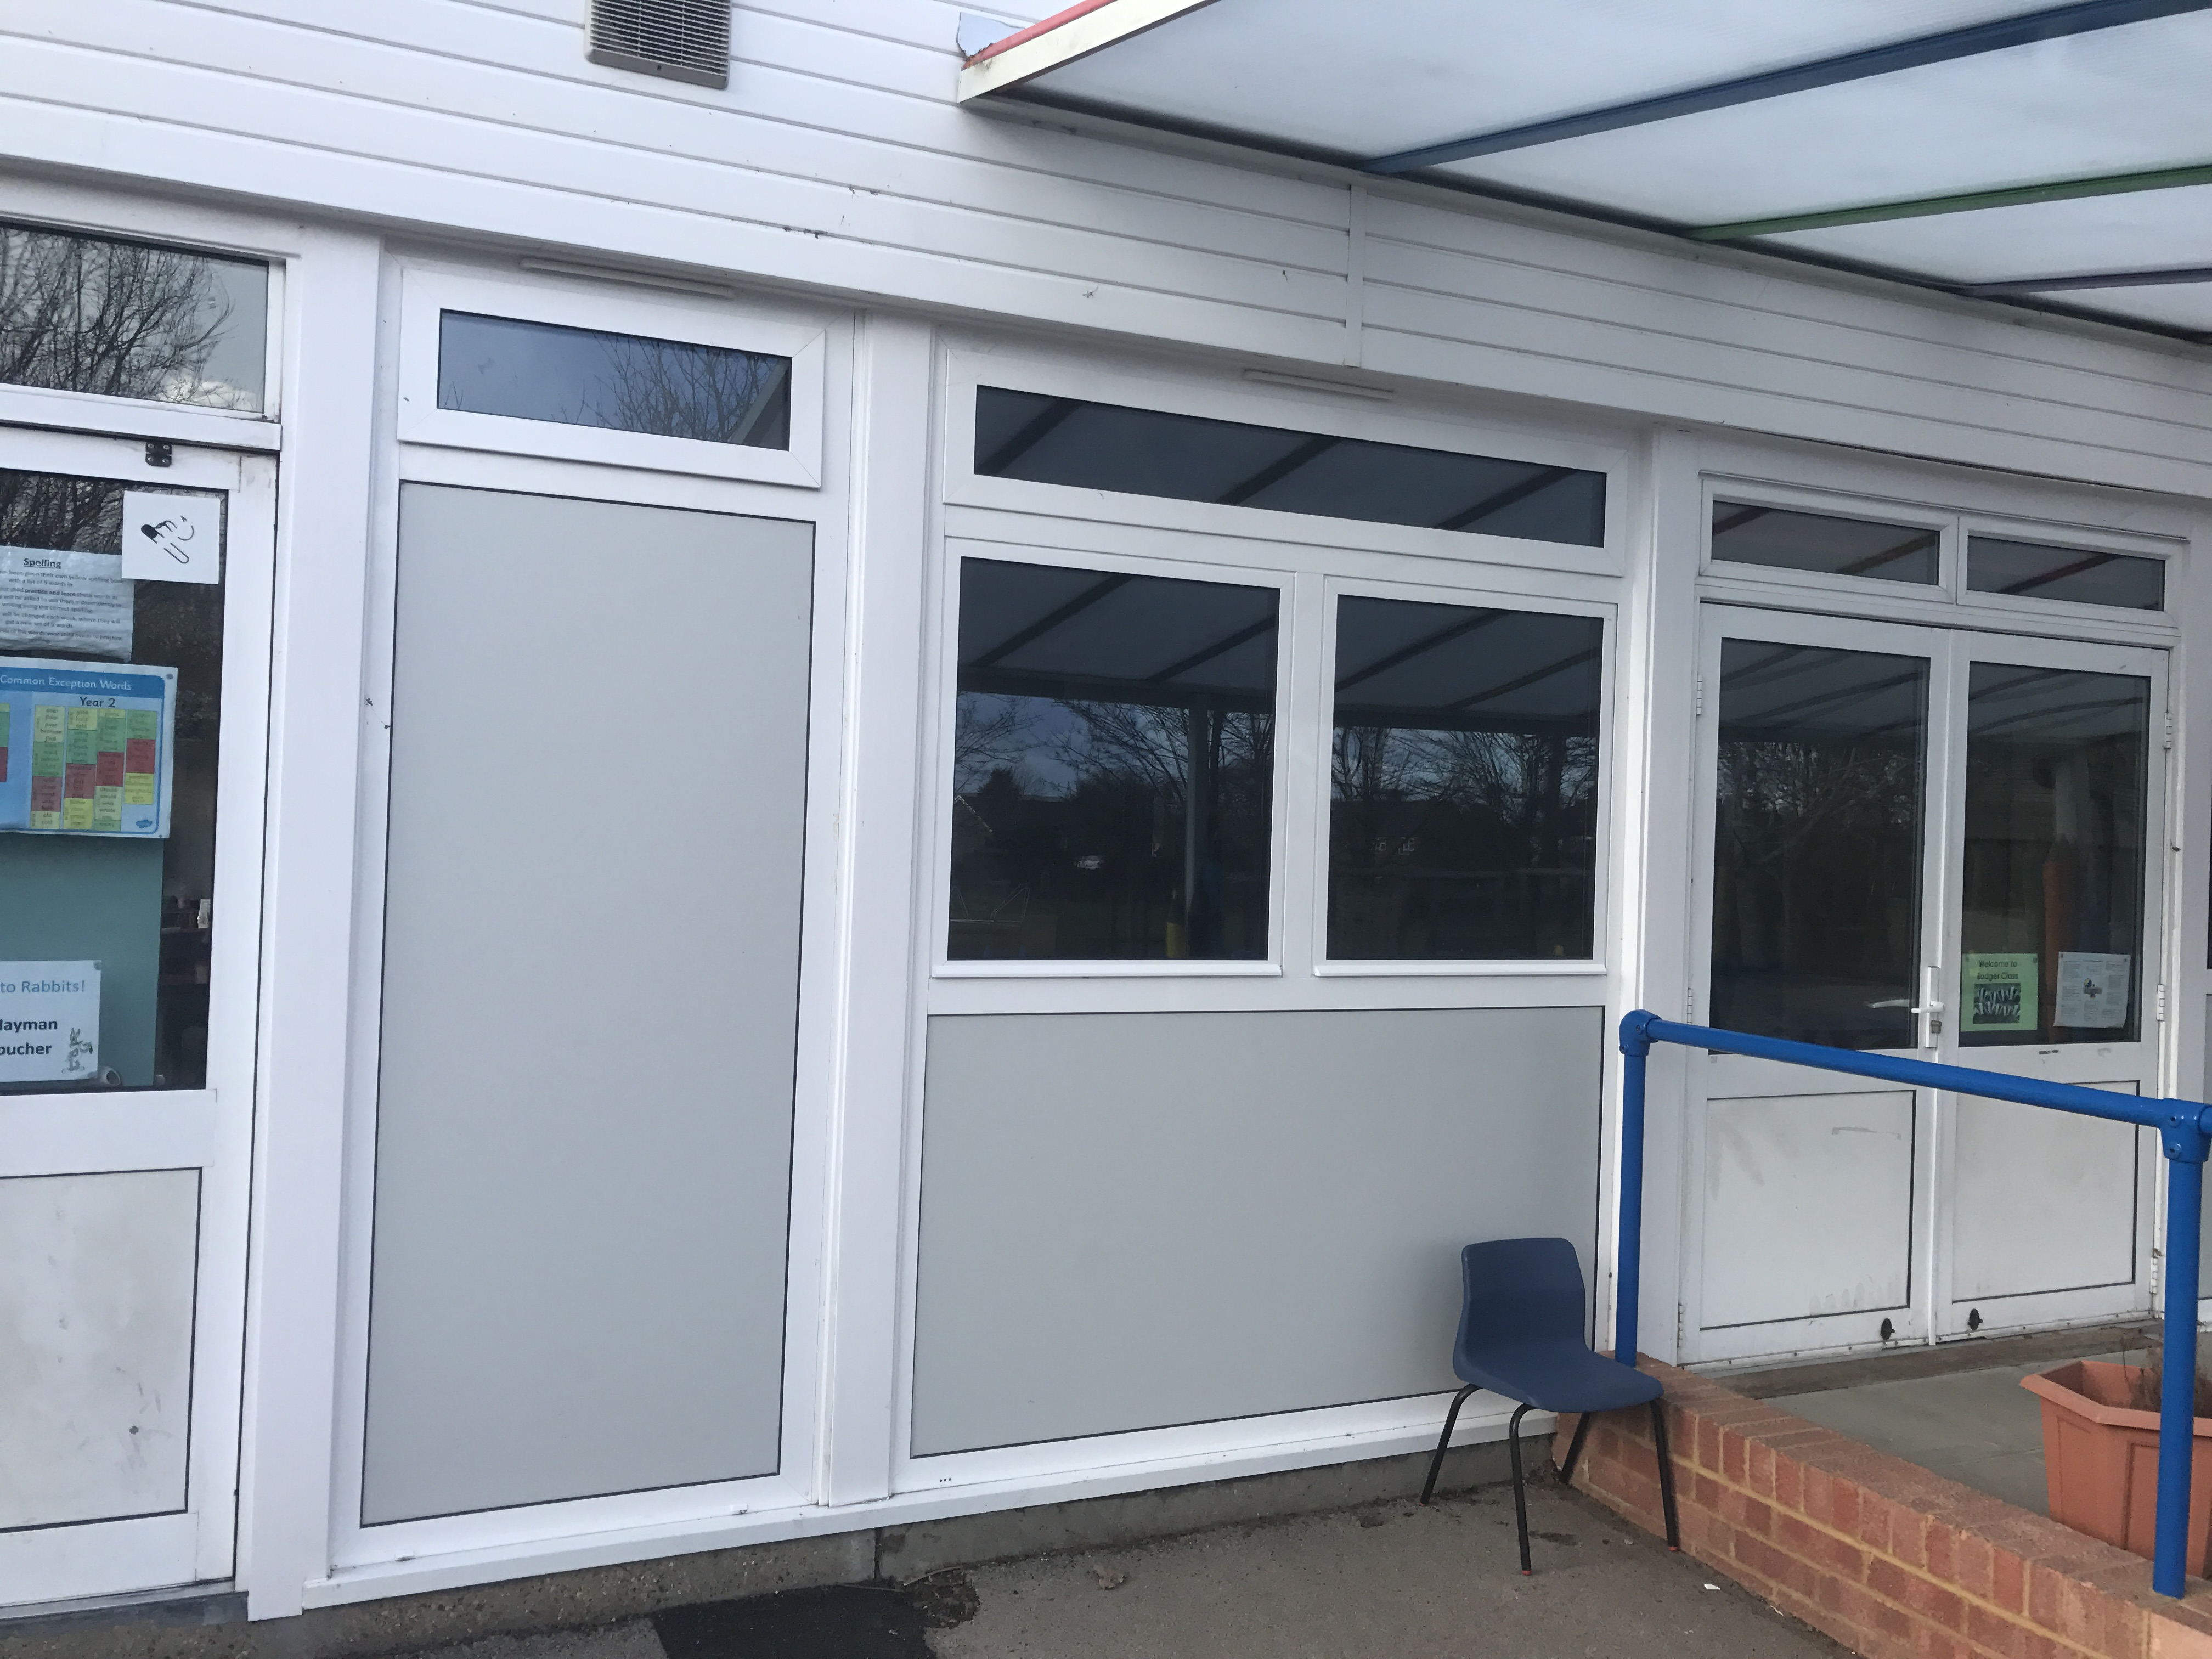 Fitted into part of a university includes all panels to the side and below windows